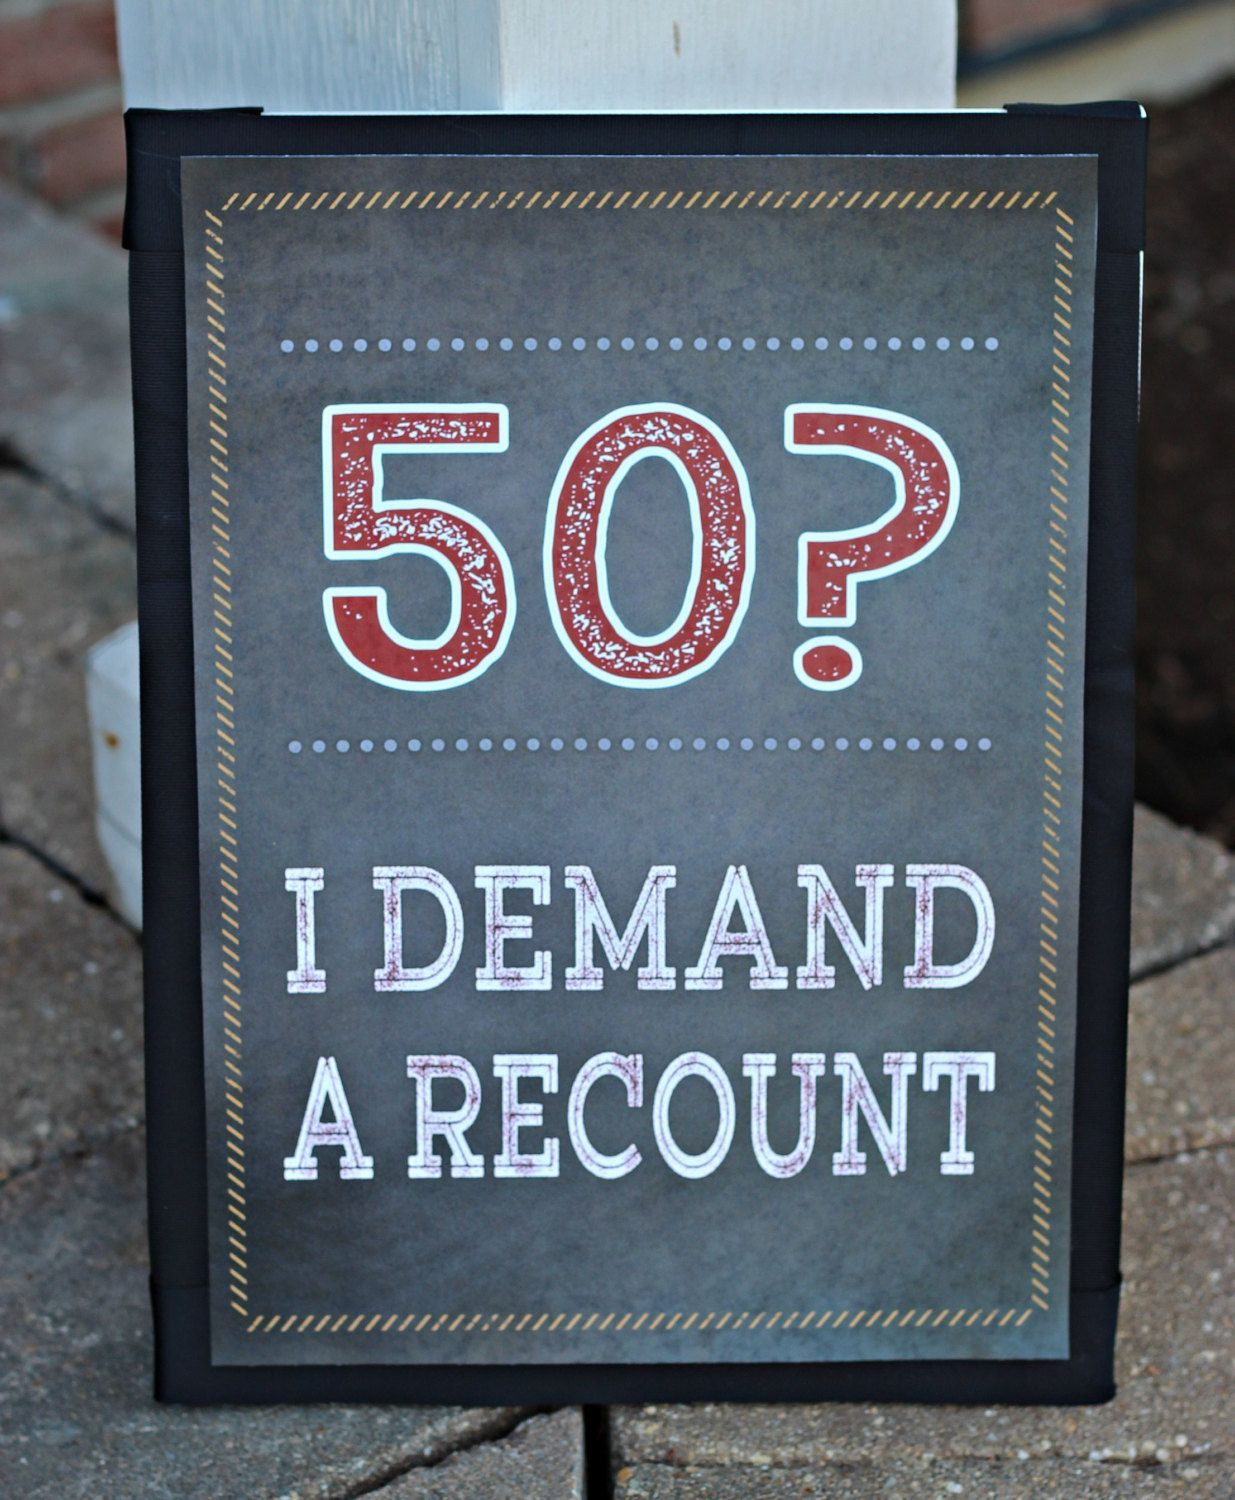 Printed 50th sign 50th birthday party decoration i demand a printed 50th sign 50th birthday party decoration i demand a recount 50th birthday party chalkboard sign black red masculine decor stopboris Choice Image